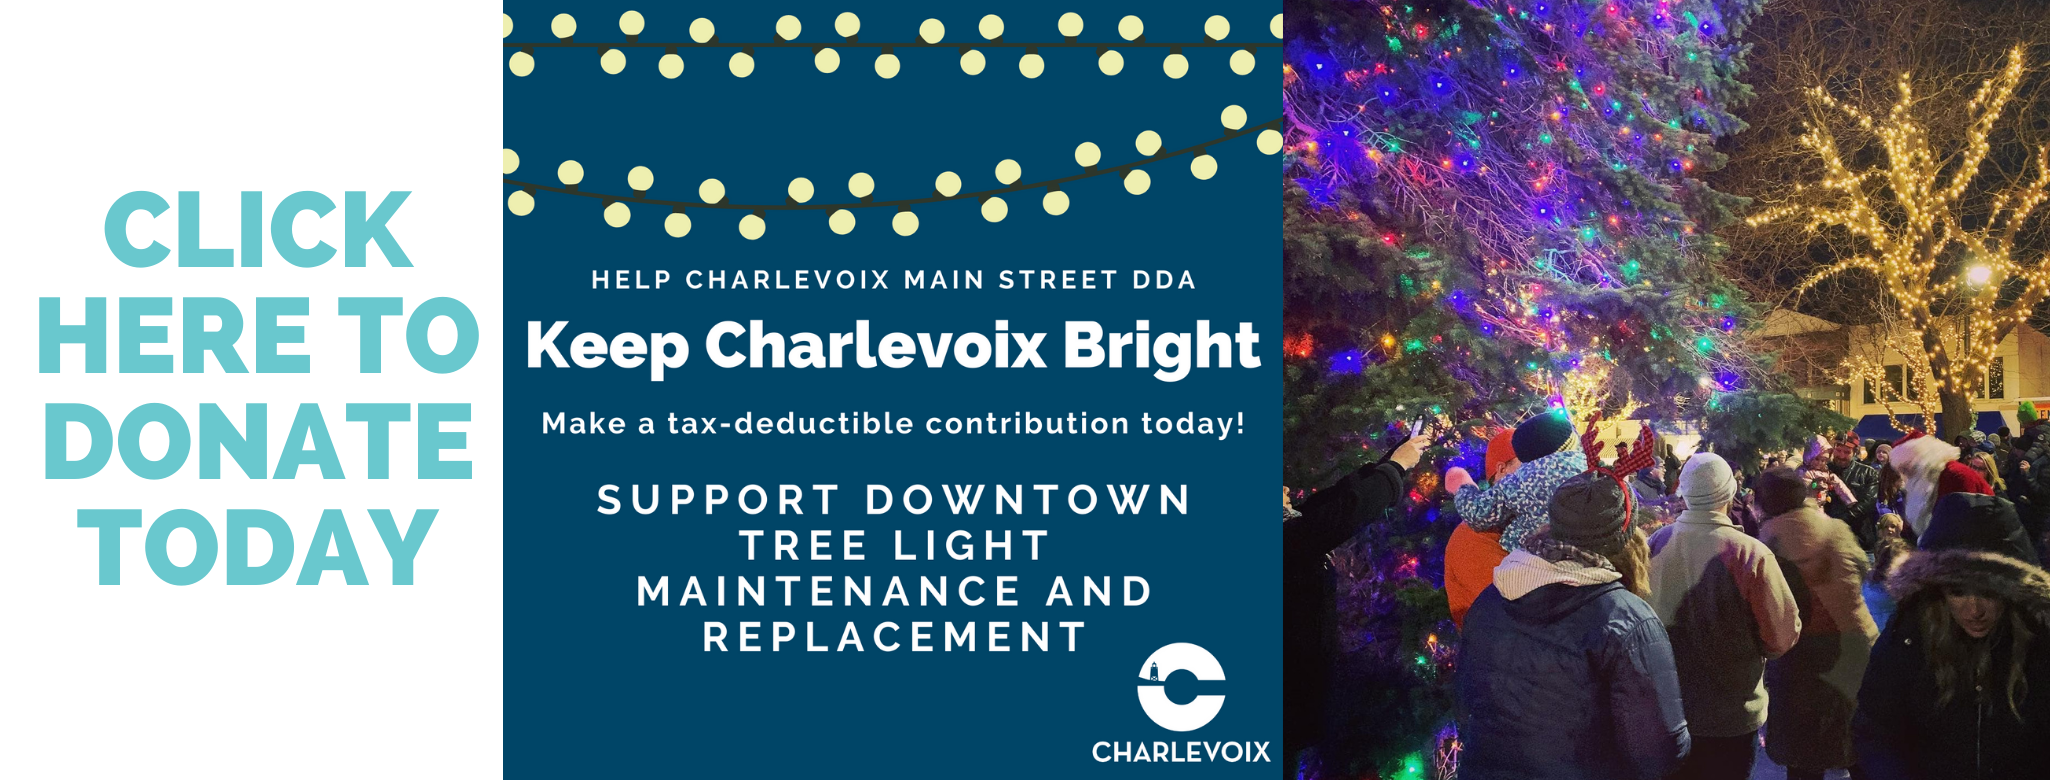 keep charlevoix bright web banner